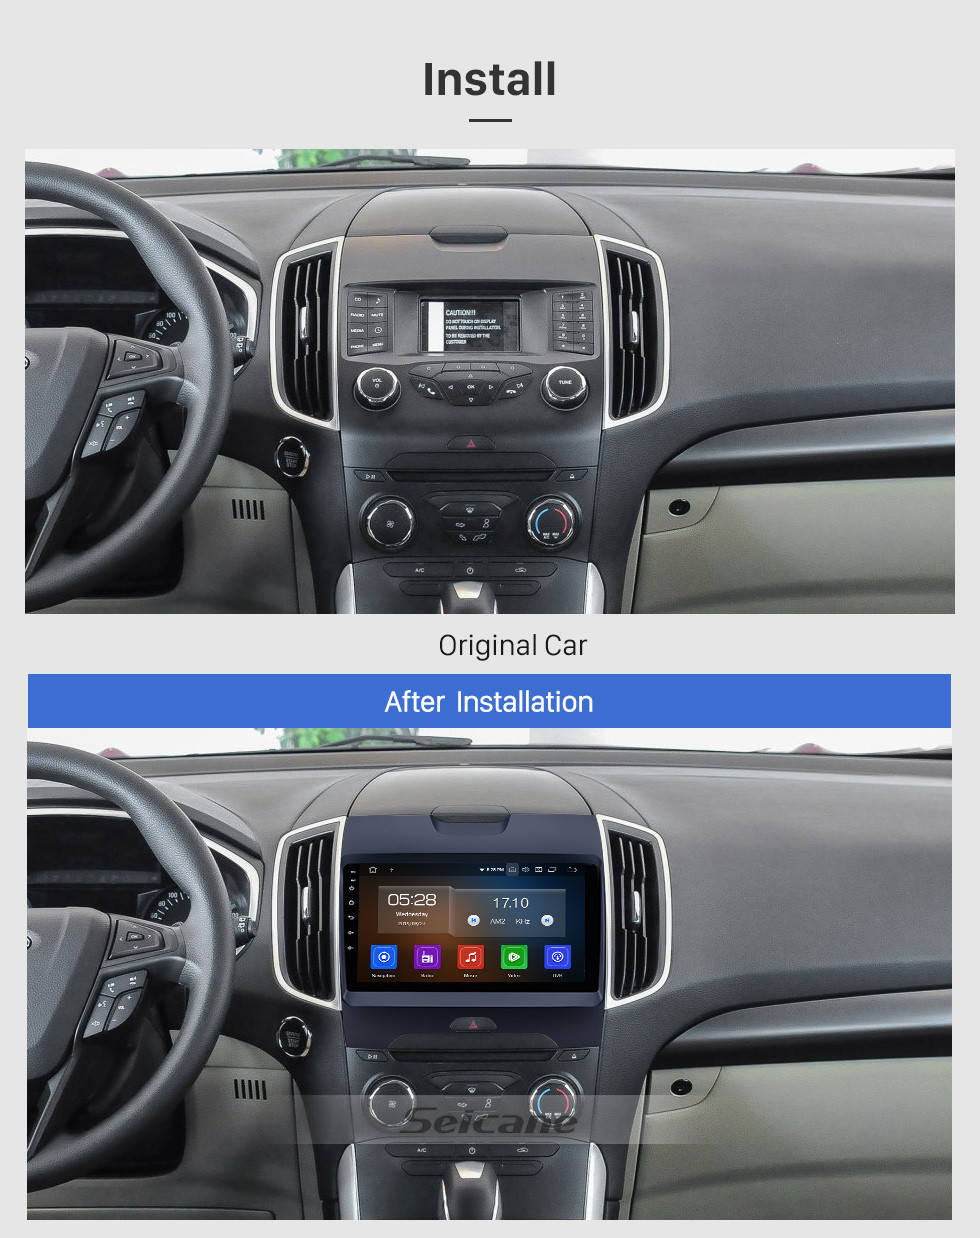 Seicane Android 10.0 HD Touchscreen 9 inch Radio for 2013-2017 FORD EDGE Bluetooth GPS Navi USB Carplay Support DVR Digital TV TPMS OBD 4G WIFI DVD Player SWC RDS